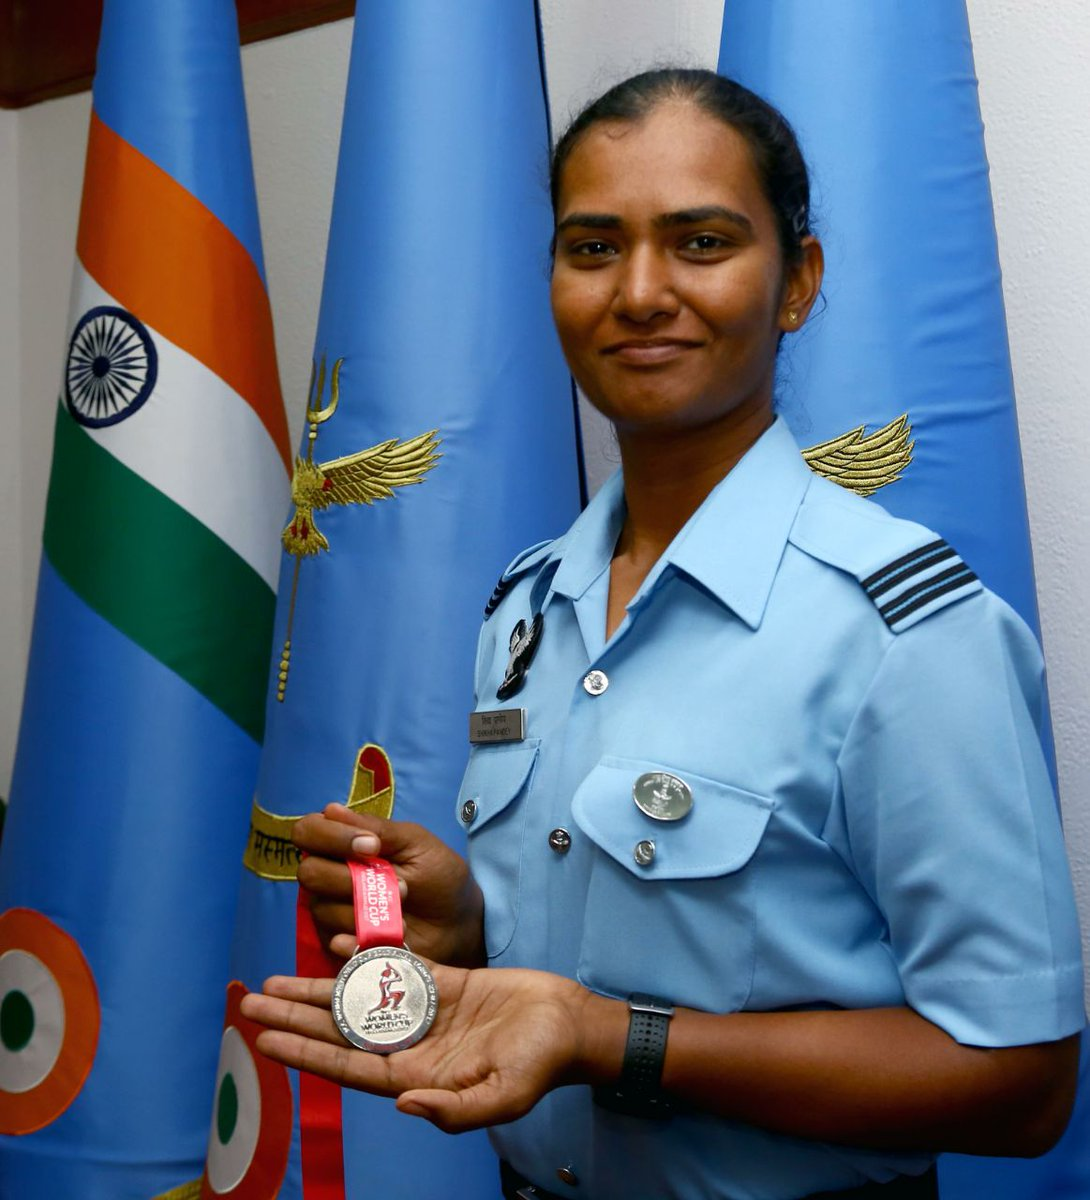 """#IAF Achievers: Sqn Ldr Shikha Pandey will be a pt of Indian Women's cricket team in the ICC T-20 World Cup. She also features in ICC Women's ODI Team of the Year 2019. """"Playing for my country is a passion realised and donning the IAF uniform is a dream come true"""", she says. <br>http://pic.twitter.com/ax5RPEpKaz"""